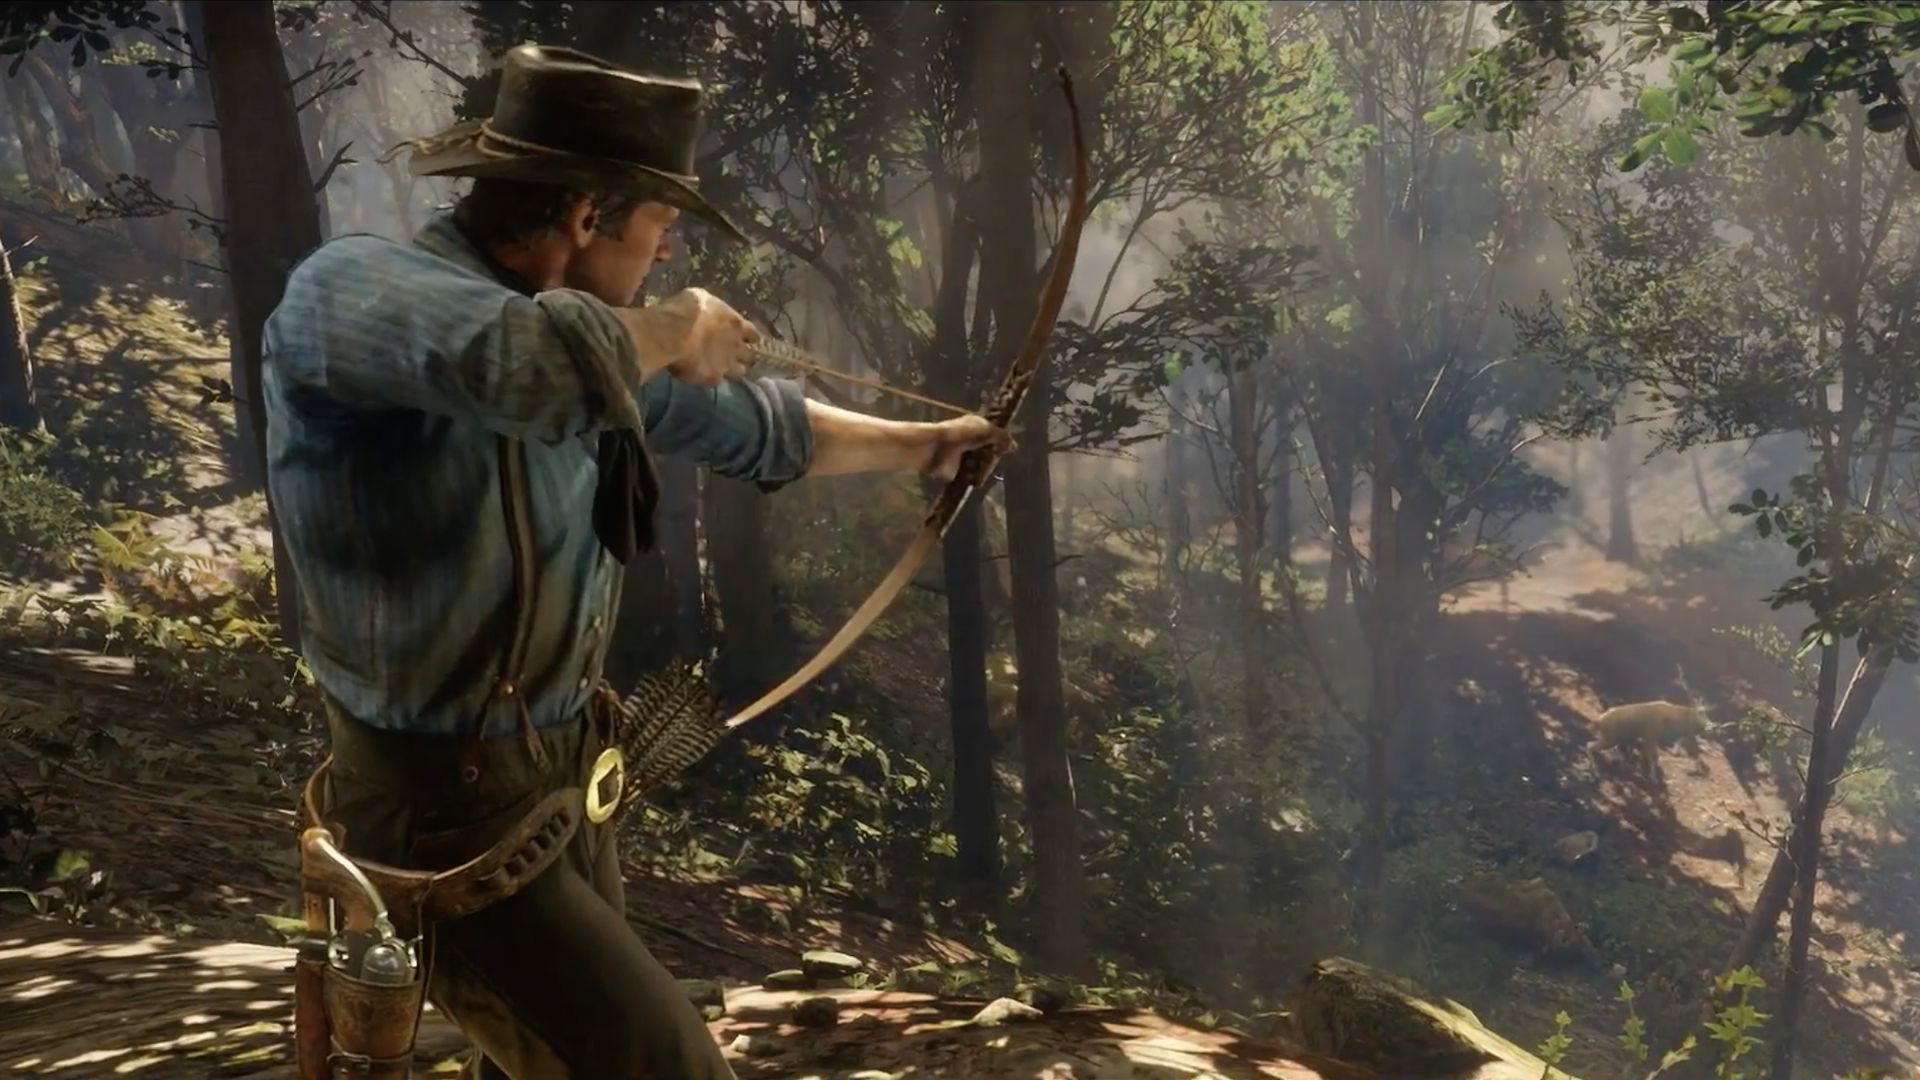 Red Dead Redemption 2's second trailer confirms it's a prequel